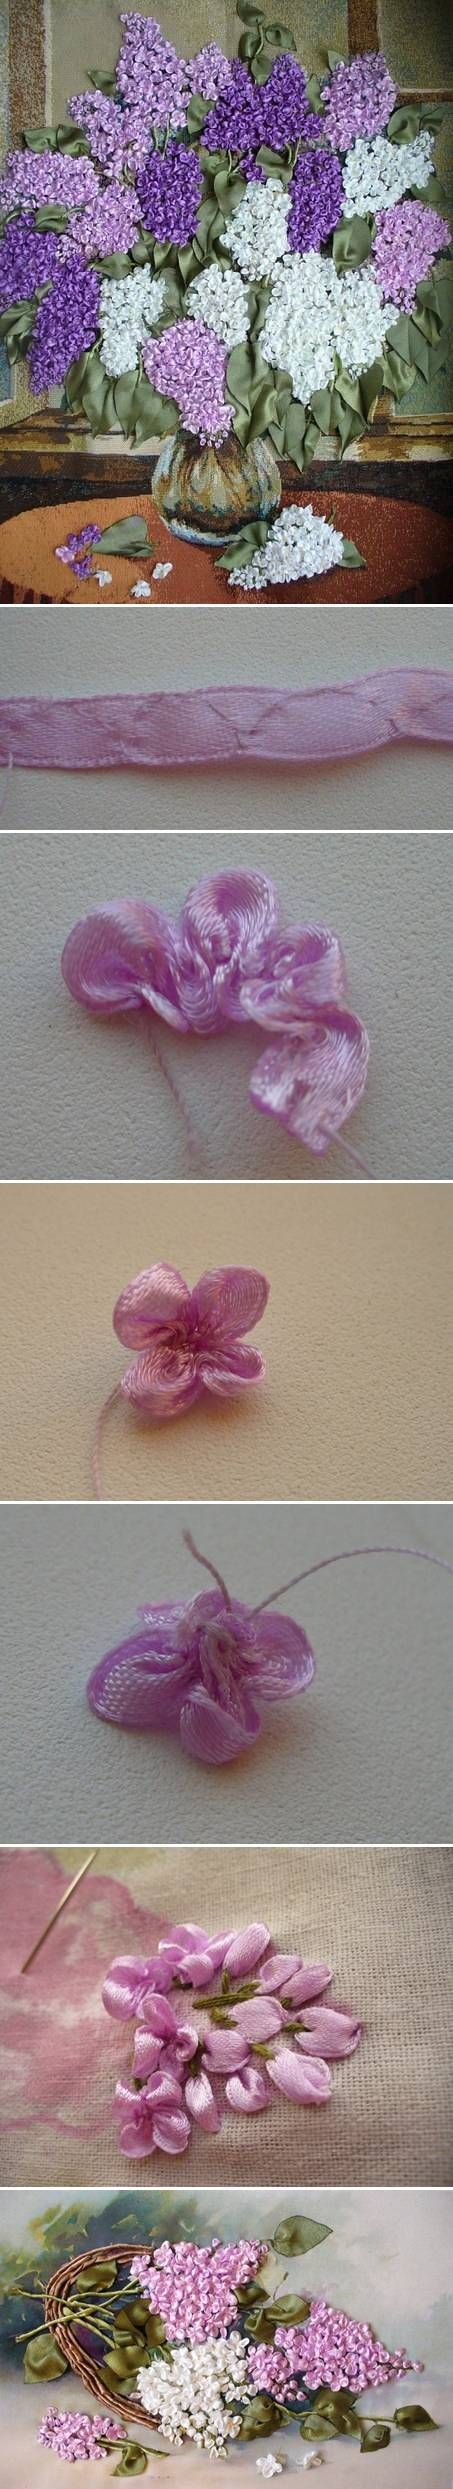 DIY Quick Flower Bow DIY Projects / UsefulDIY.com